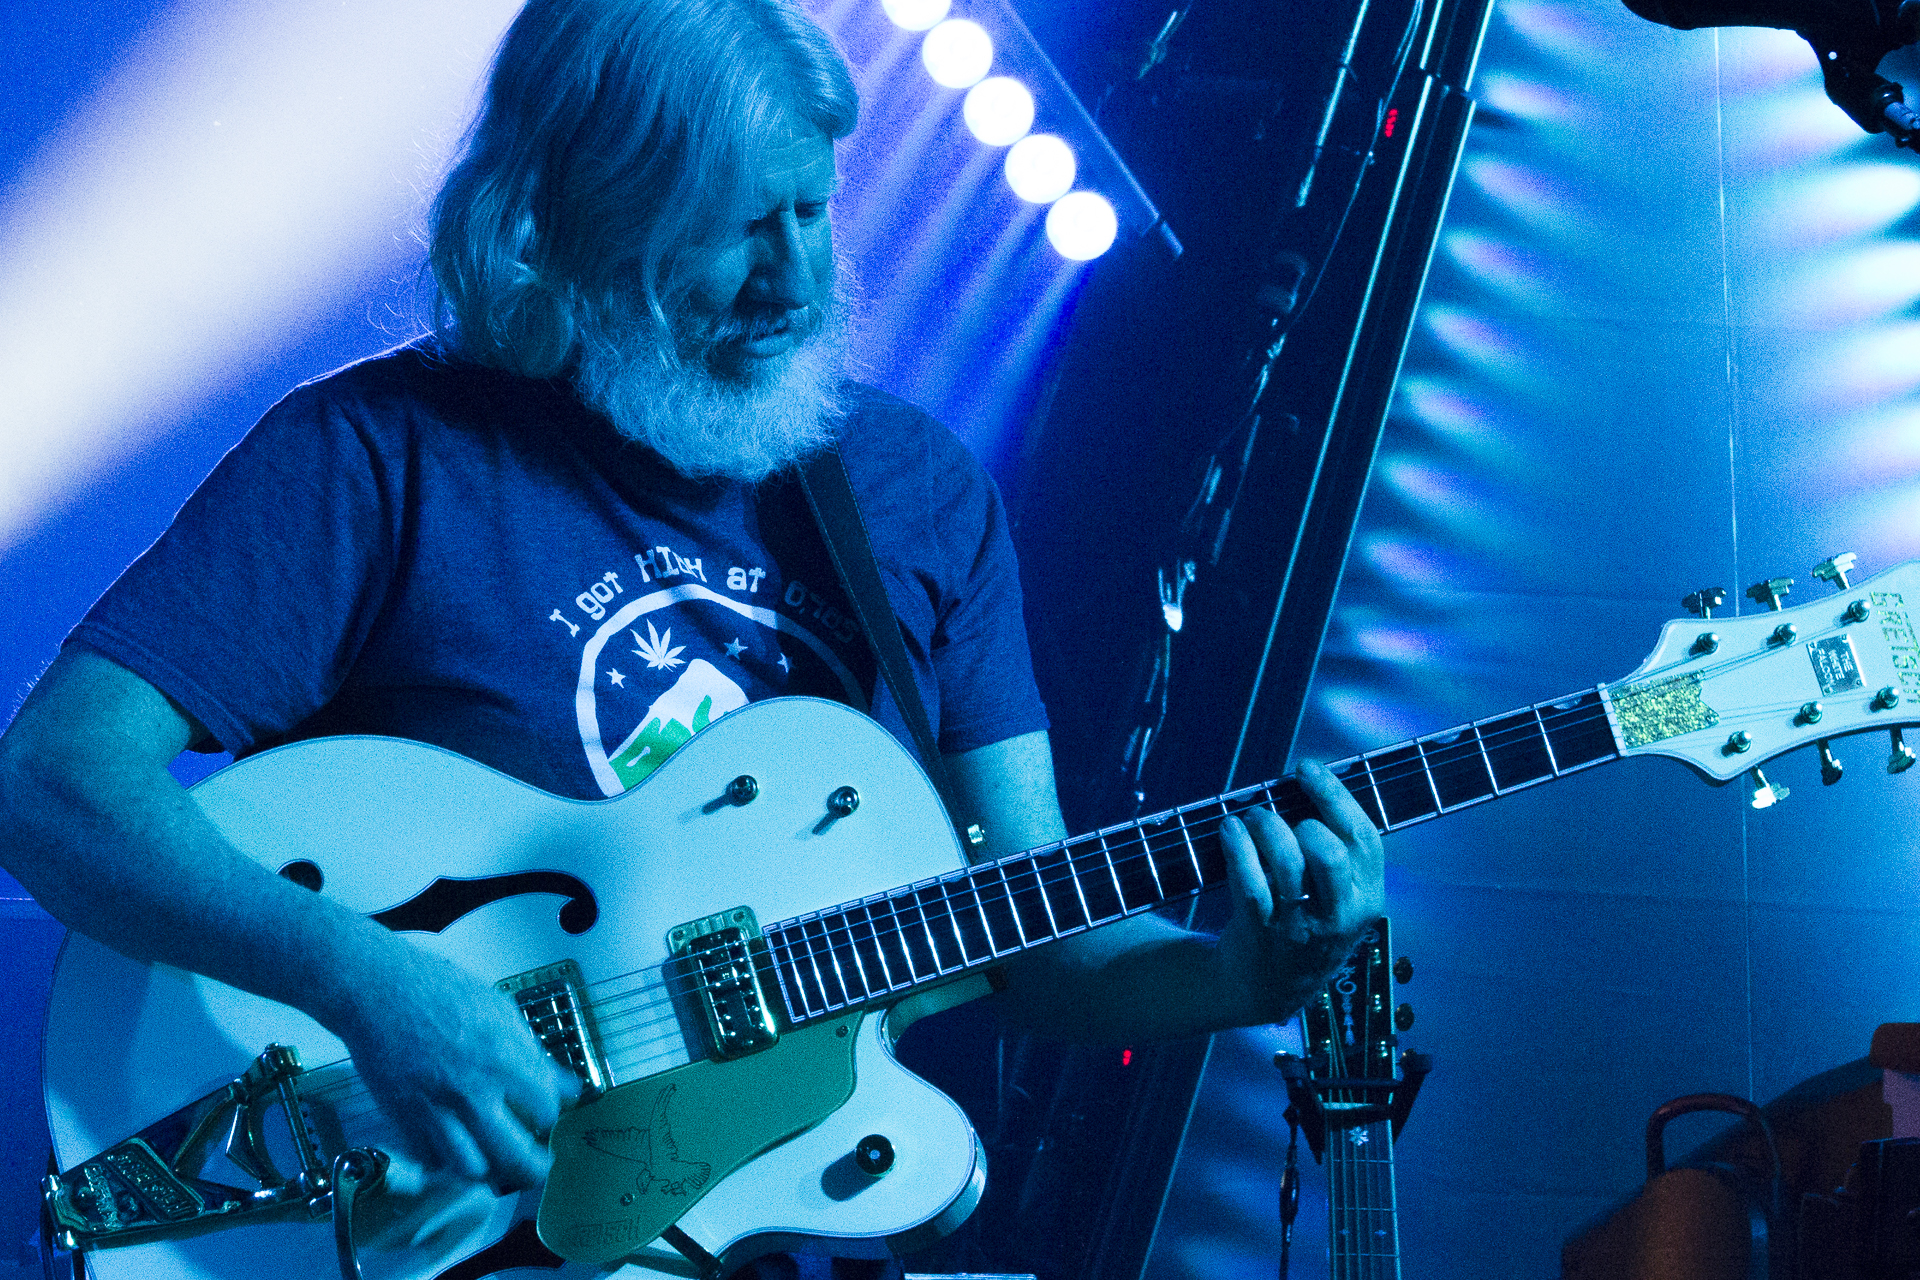 Bill Nershi/The String Cheese Incident